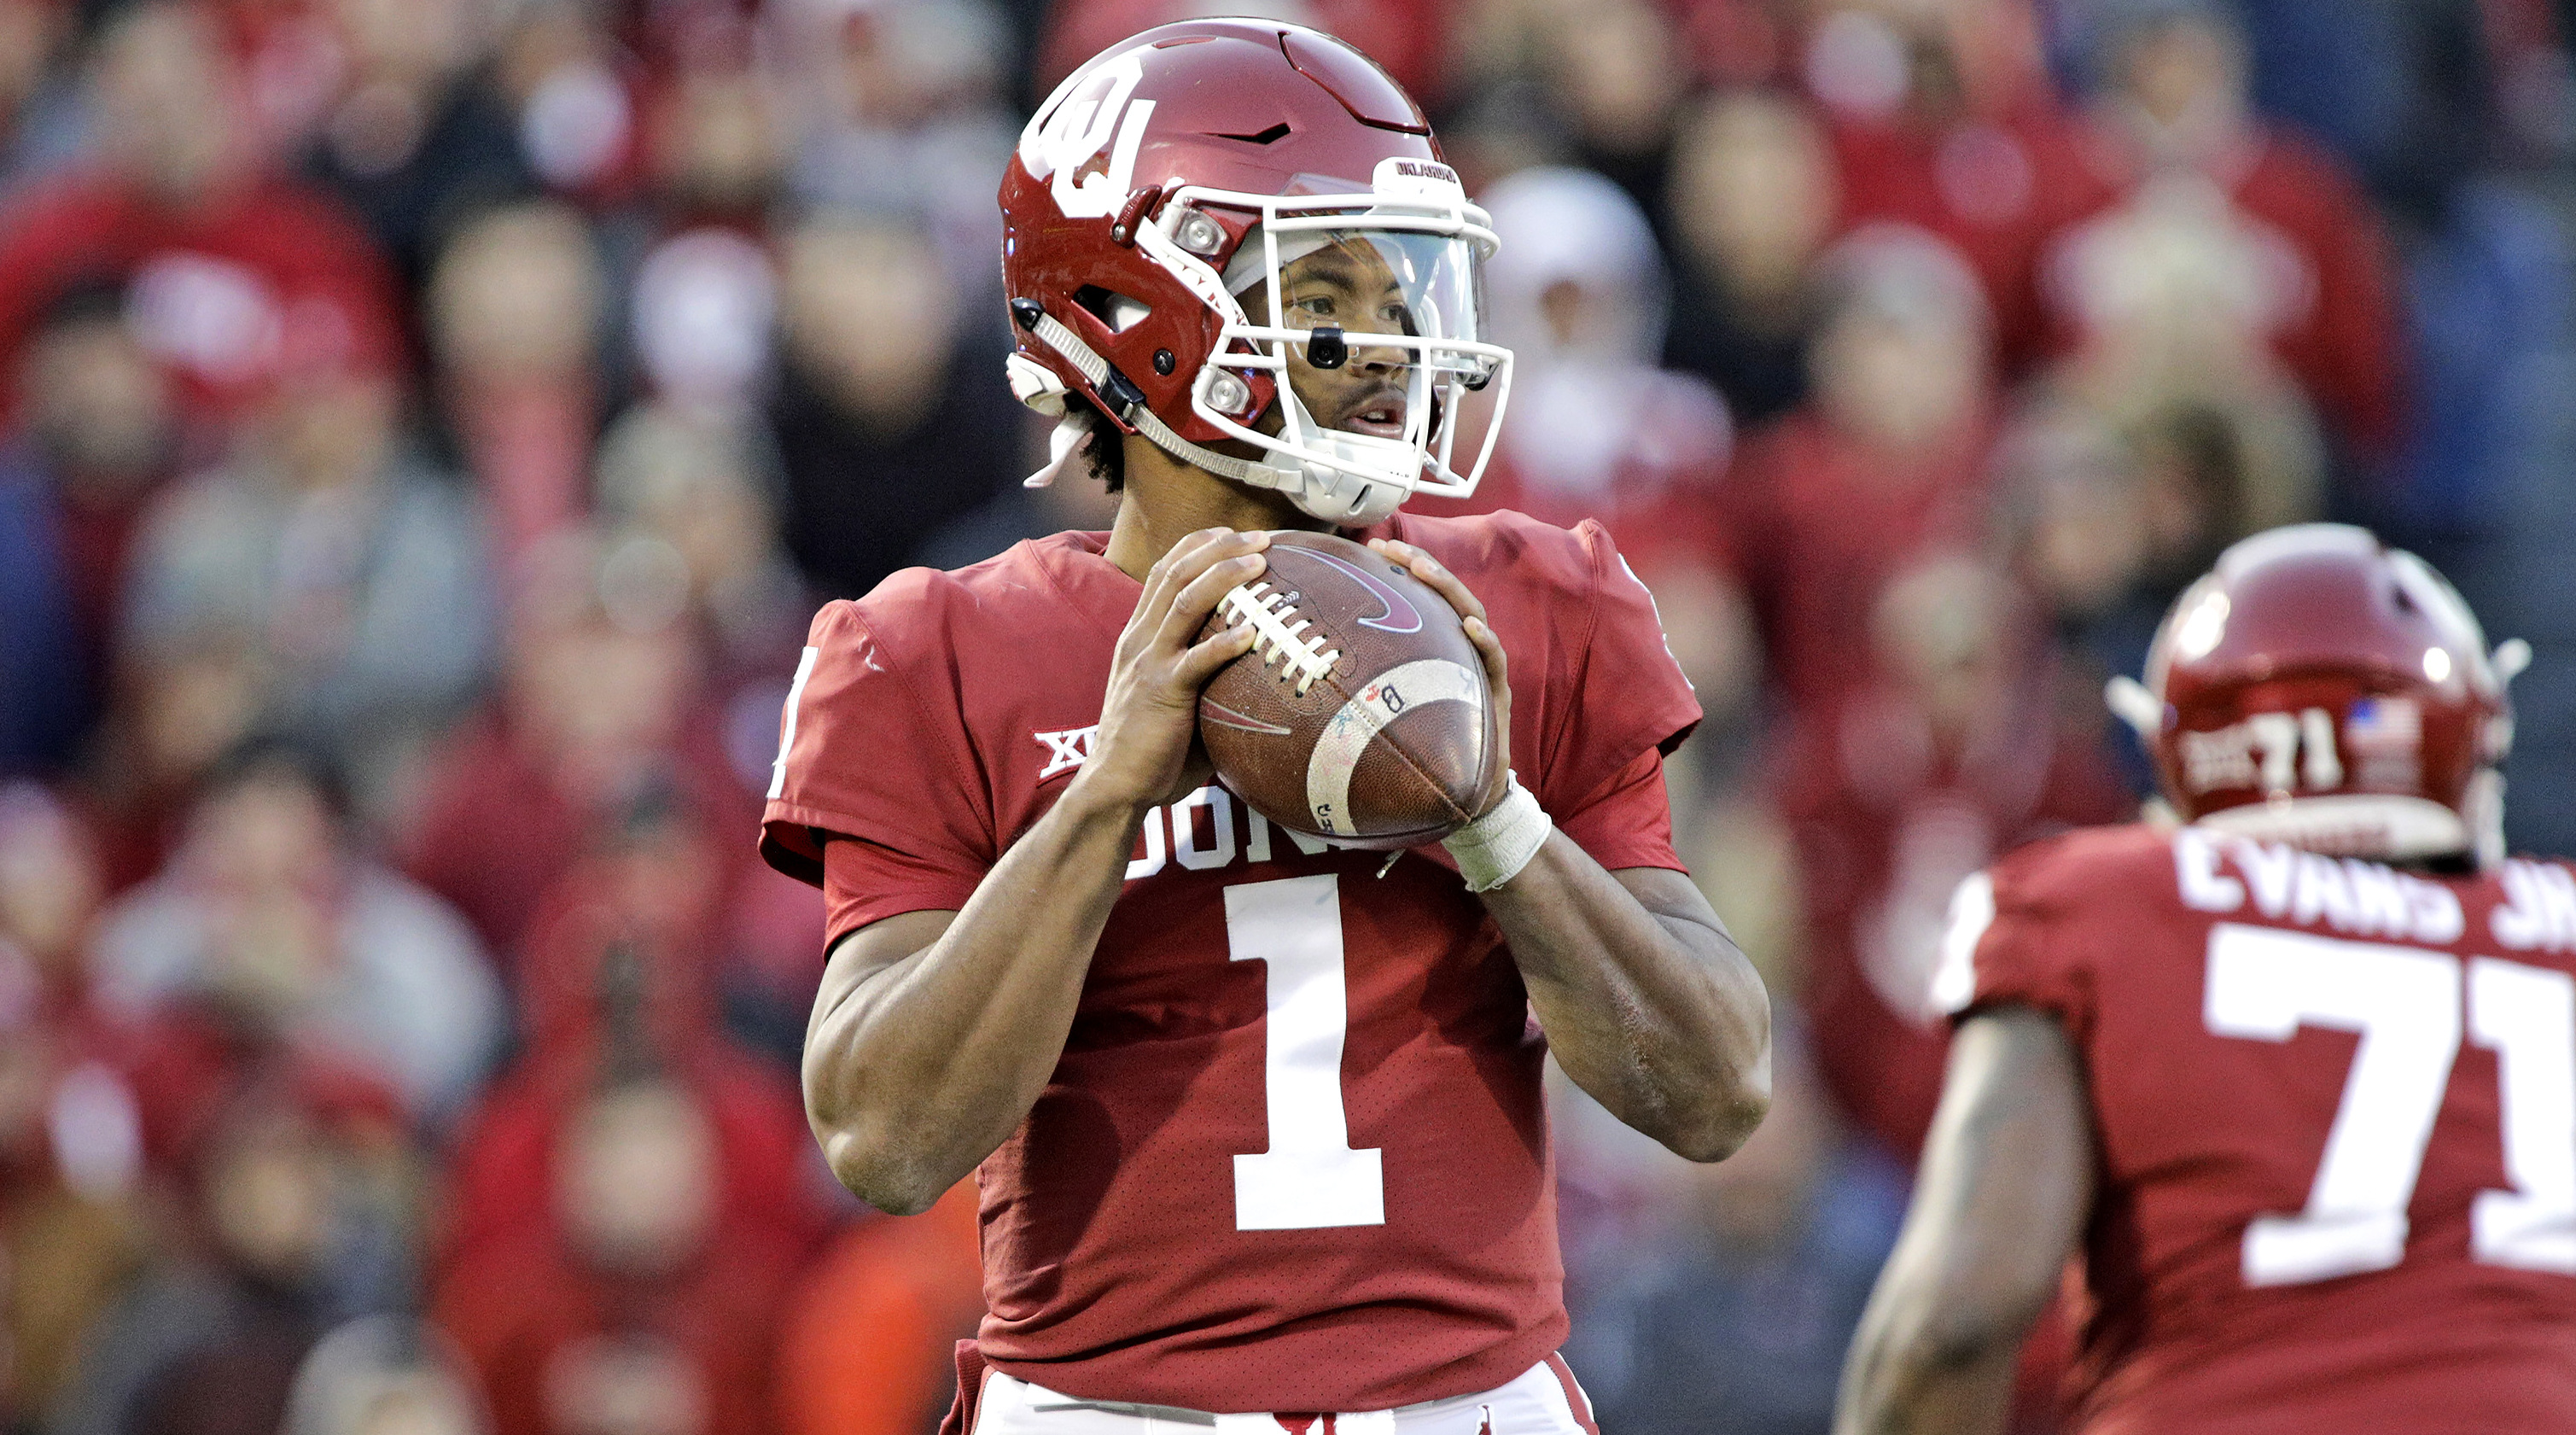 College football rankings and accurate weekly picks Exclusive content features and analysis